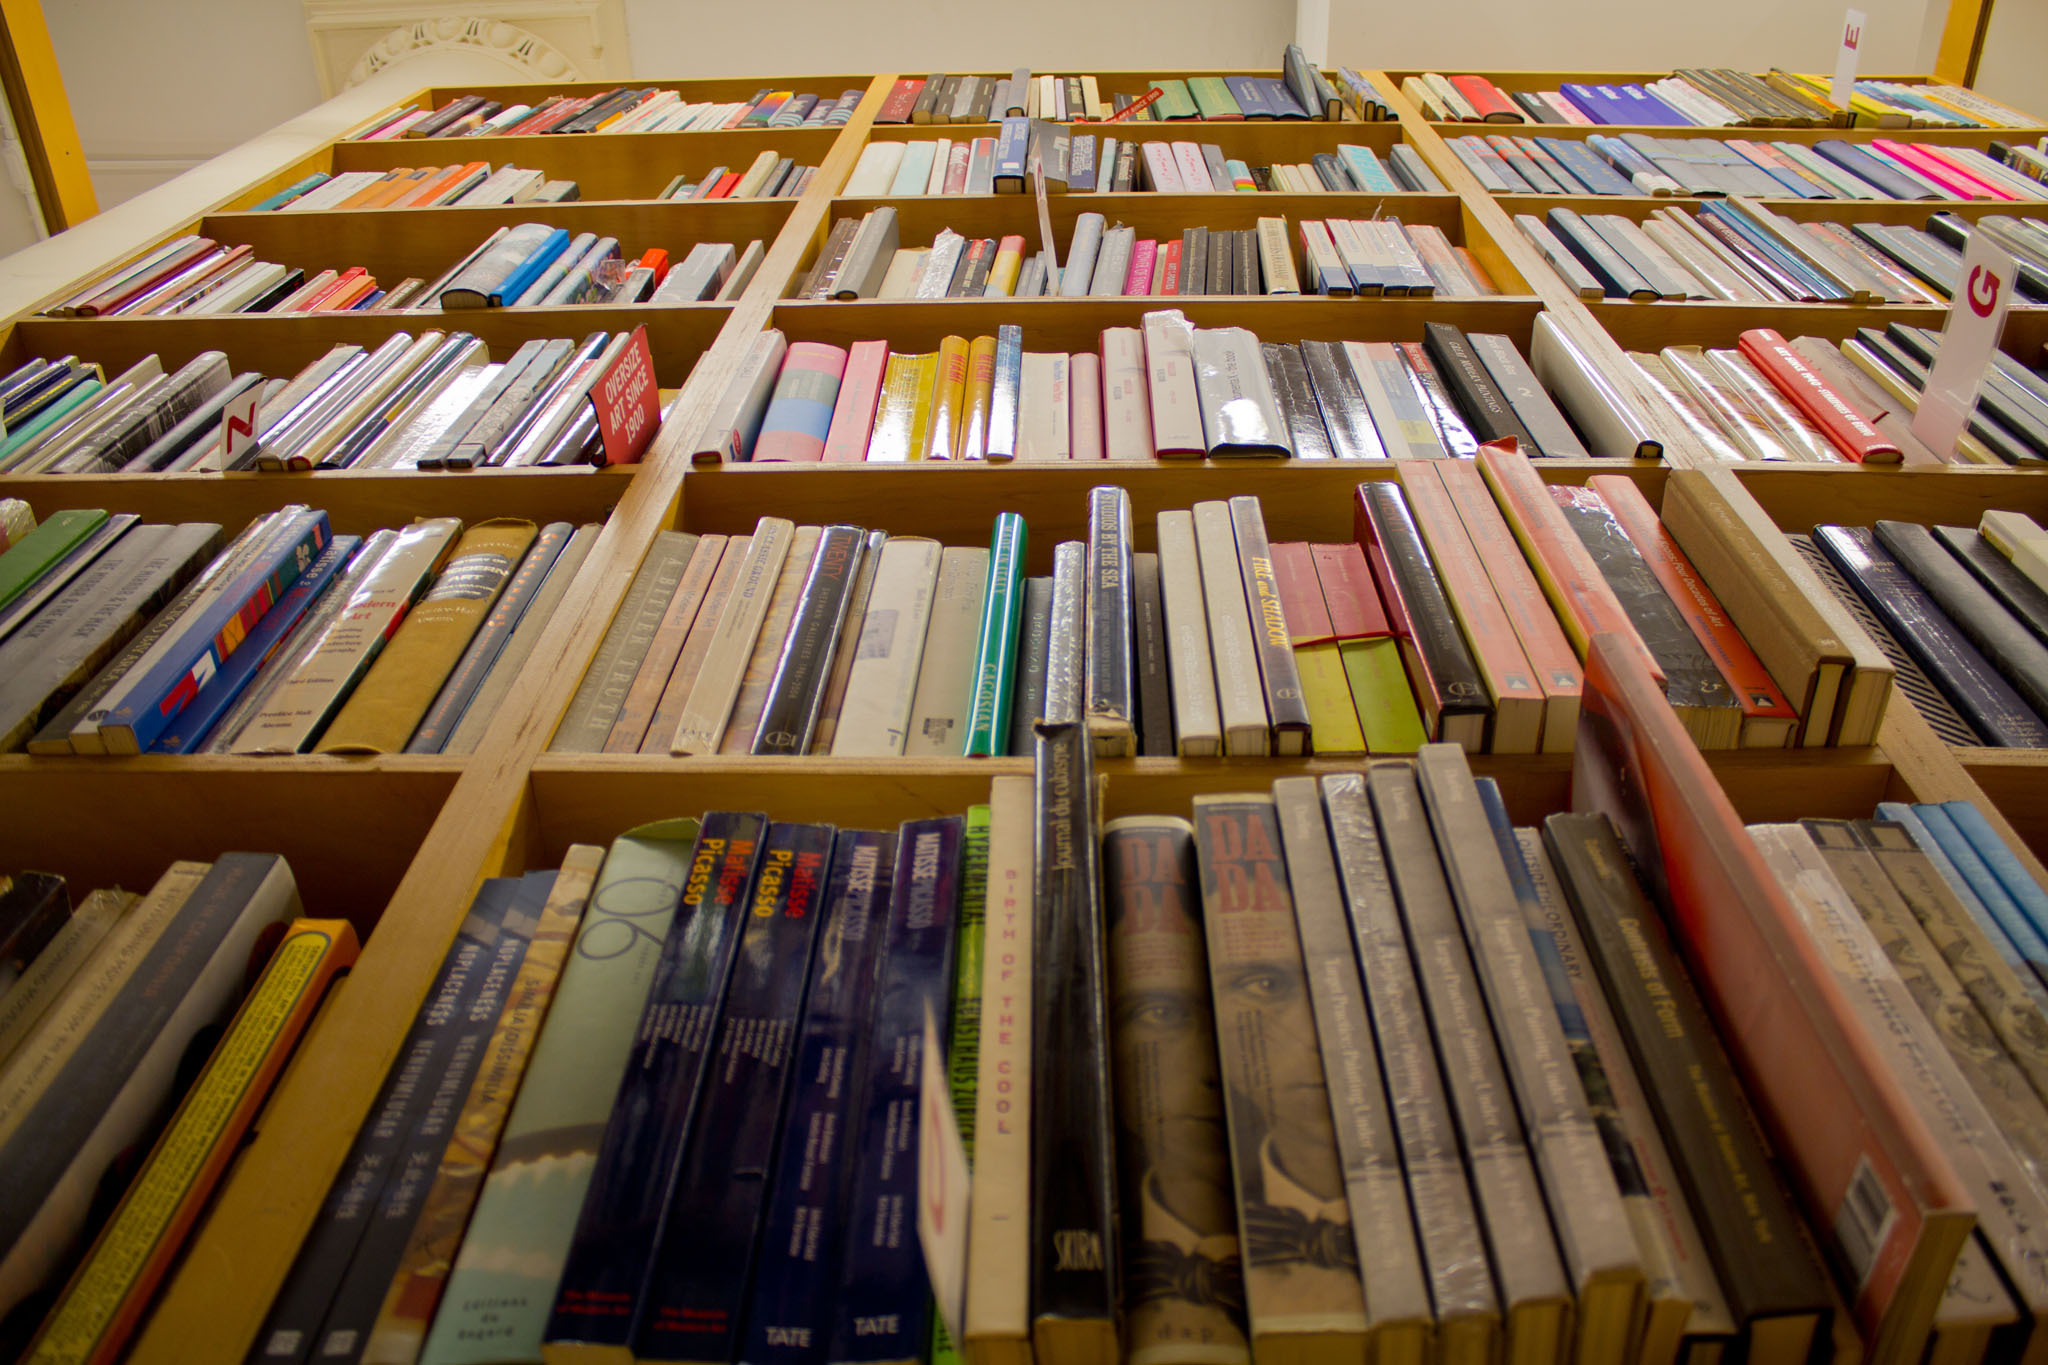 Commune with other bibliophiles at an indie bookstore